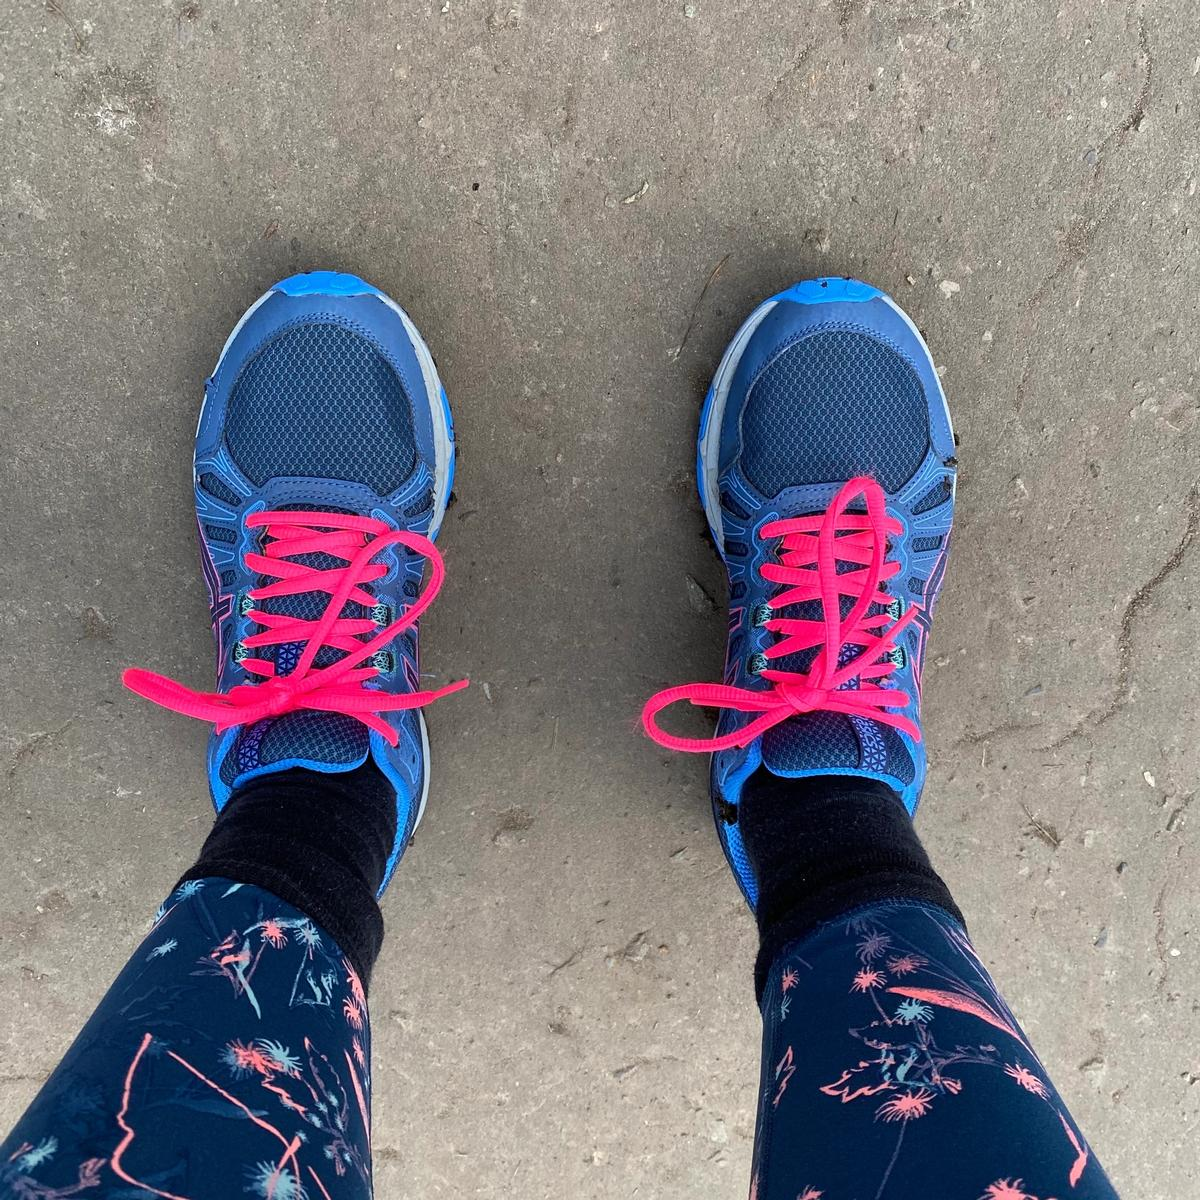 Pair of feet in running shoes from above